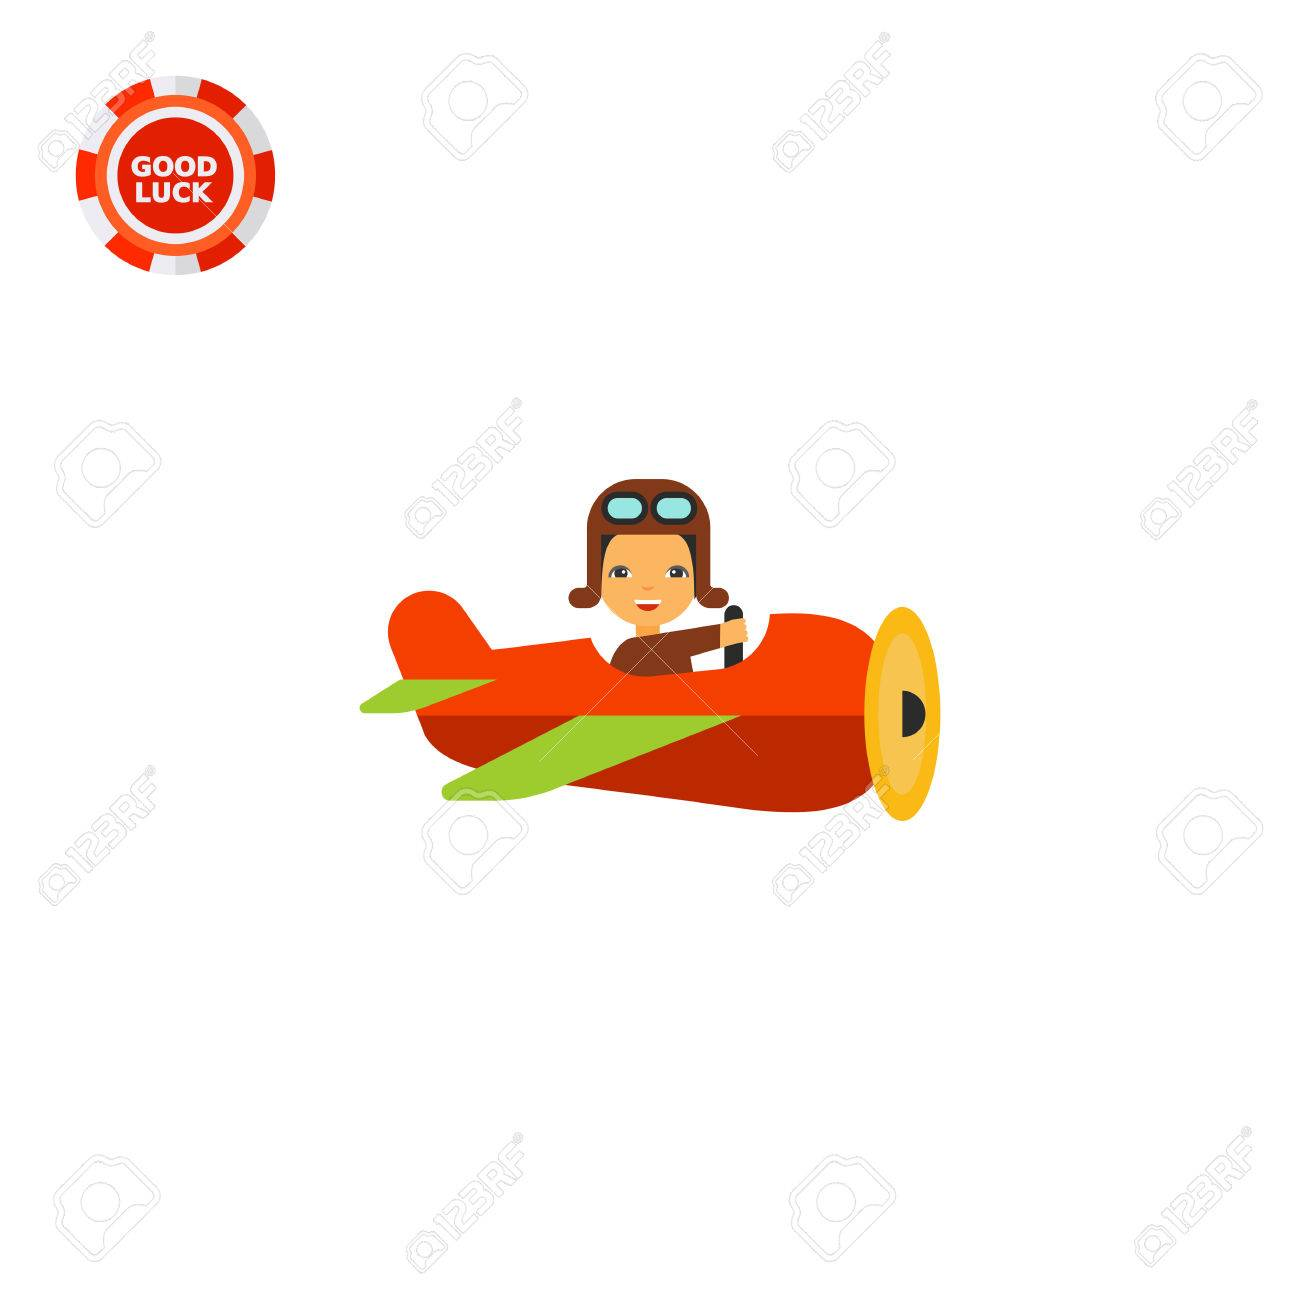 Cartoon Flying Old Plane With Smiling Pilot Navigating It Side